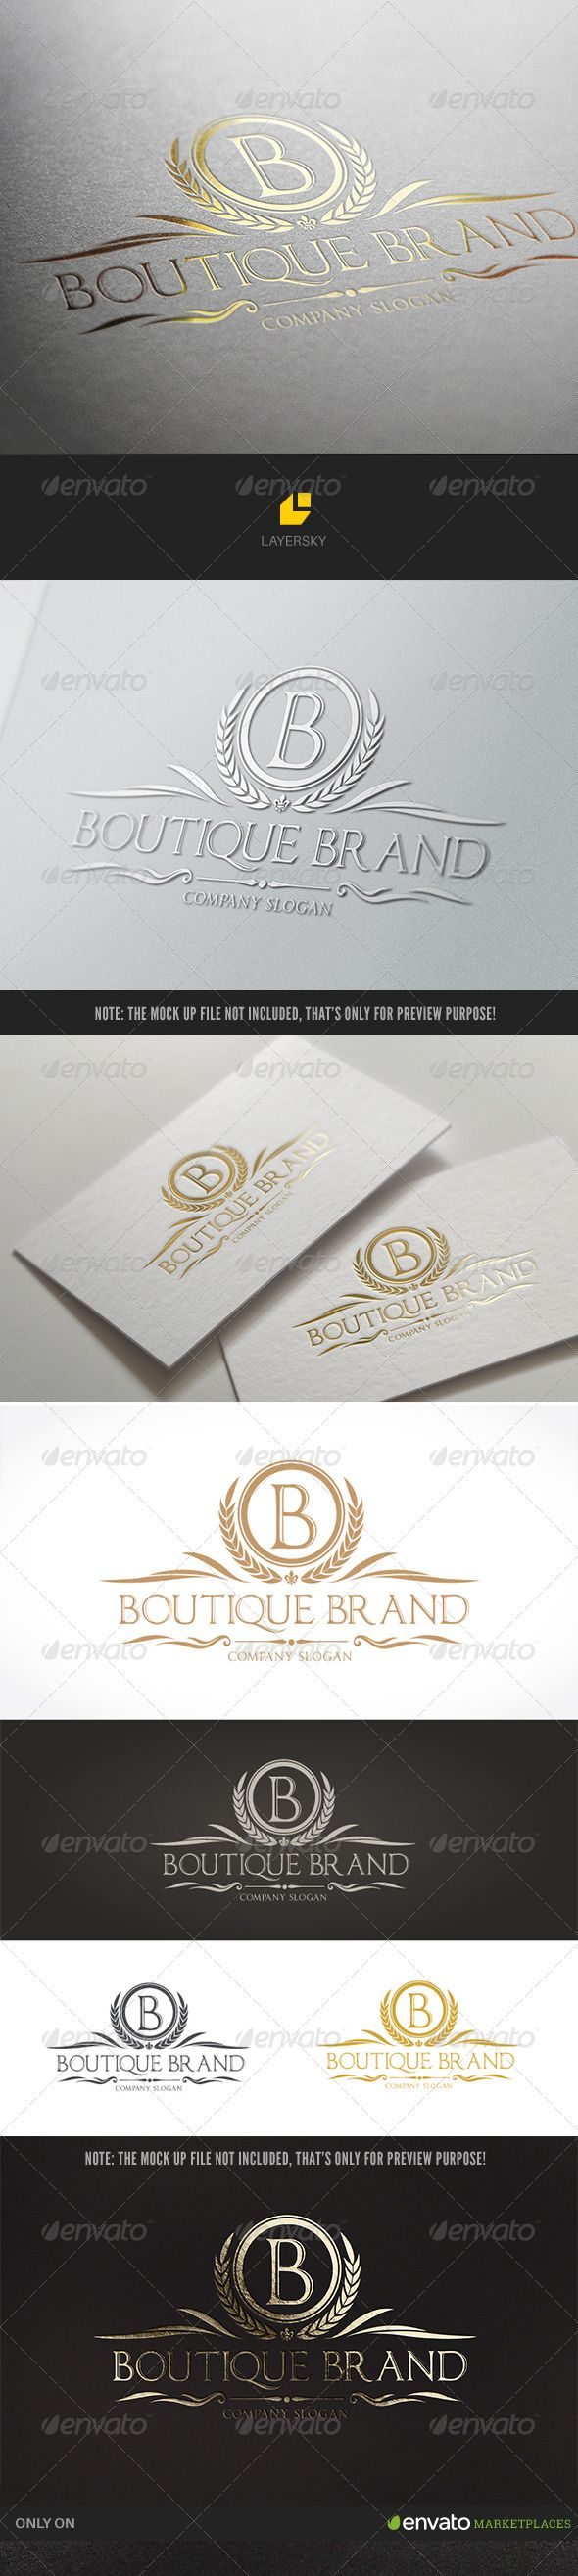 Boutique Brand — Photoshop PSD #menu #security • Available here → https://graphicriver.net/item/boutique-brand-/8238077?ref=pxcr